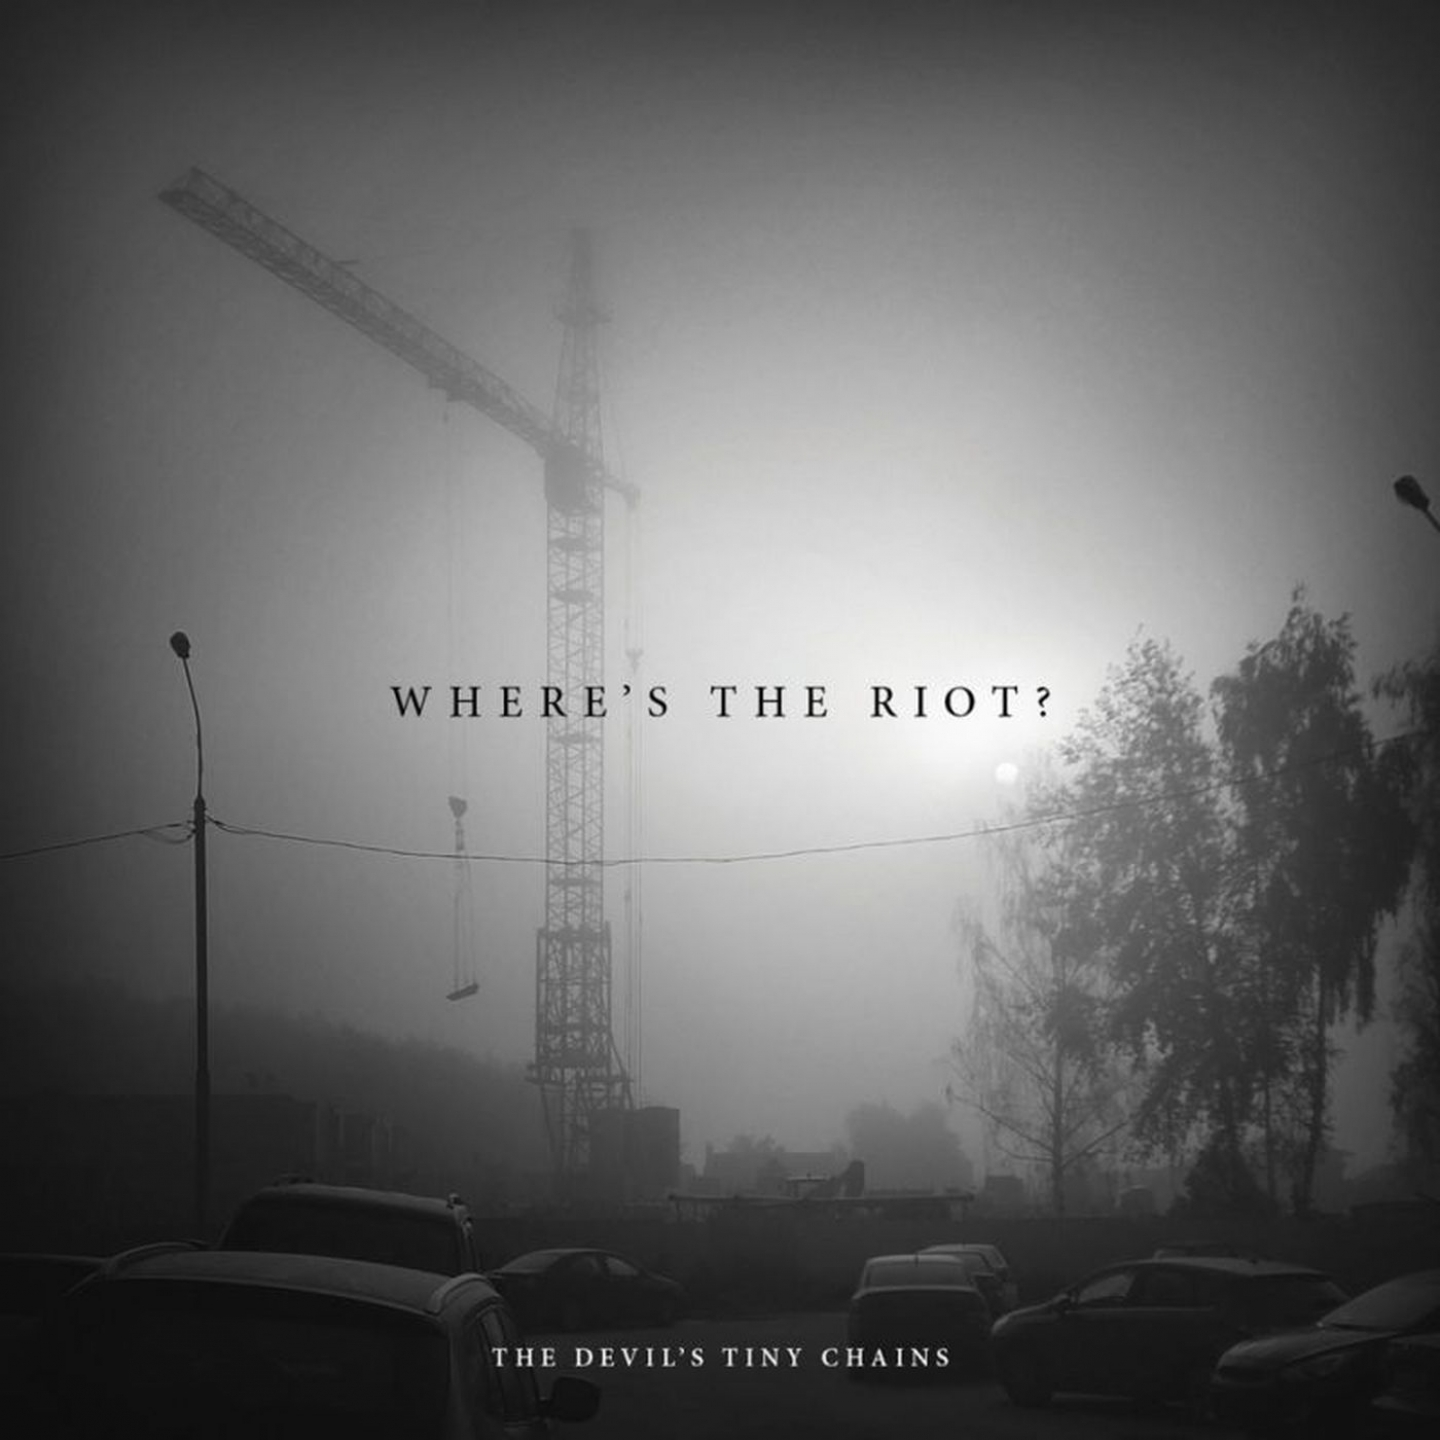 The Devil's Tiny Chains – 'Where's the Riot?' (Album)